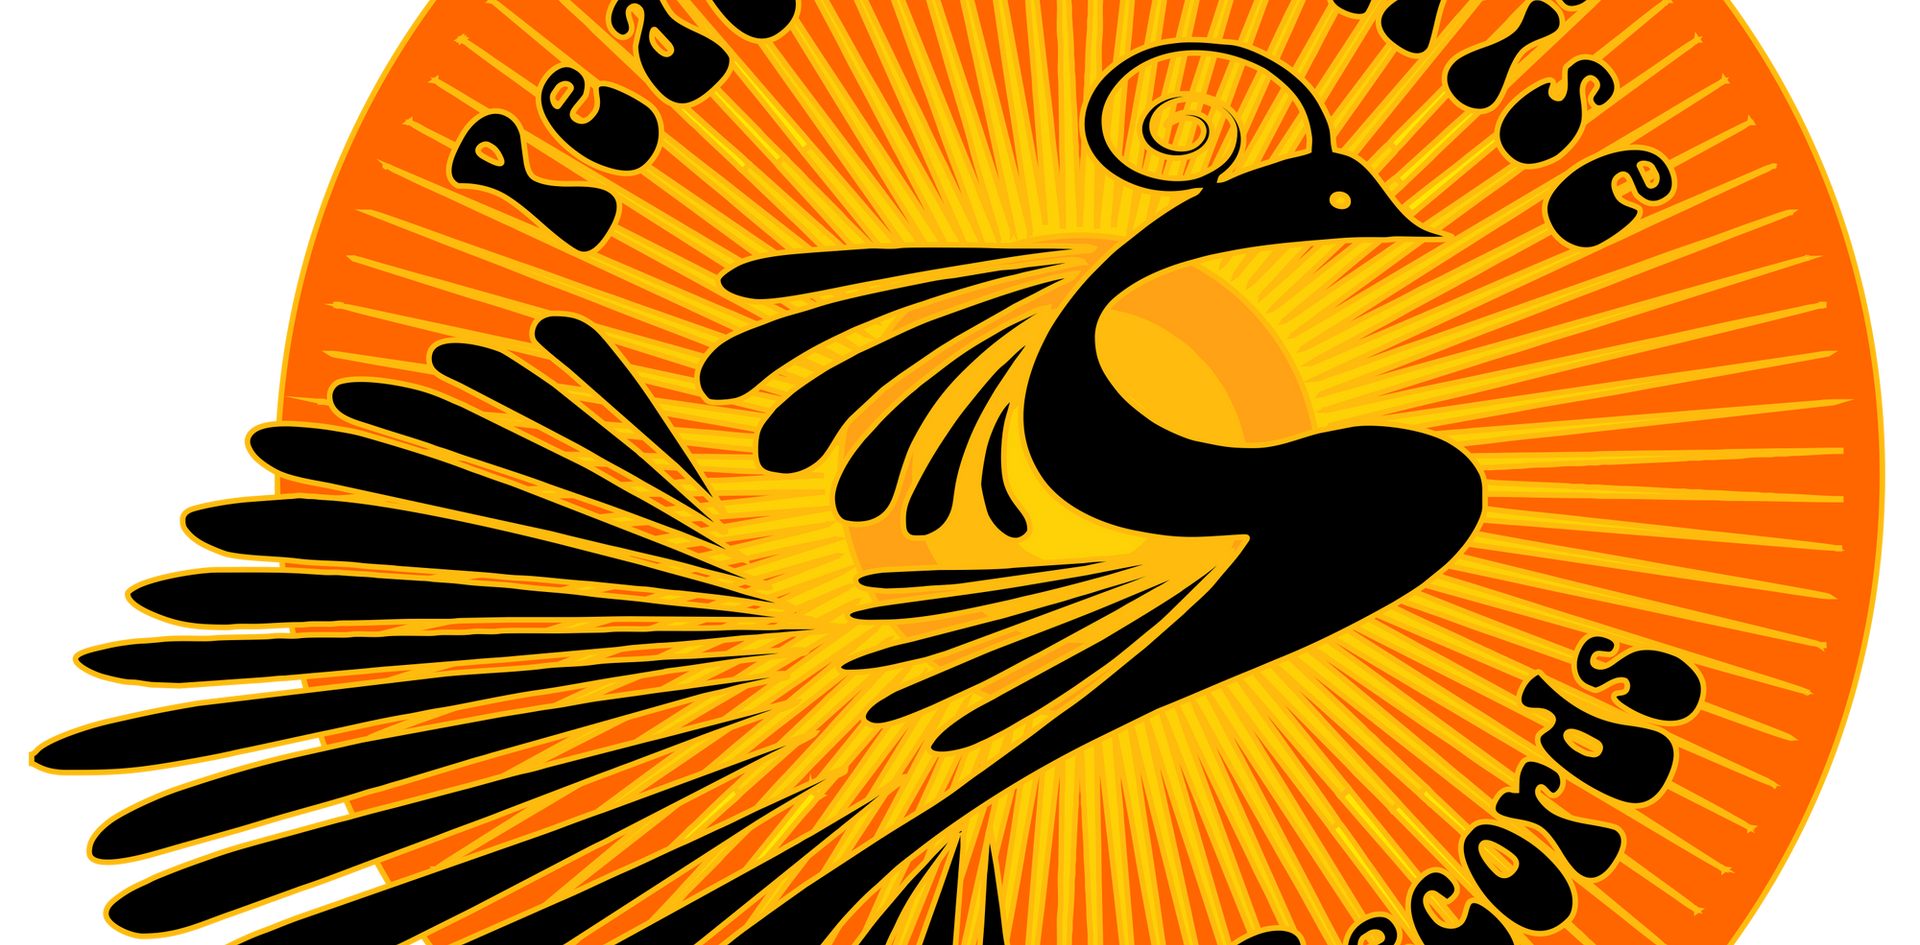 peacocksunrise-records-logo.png